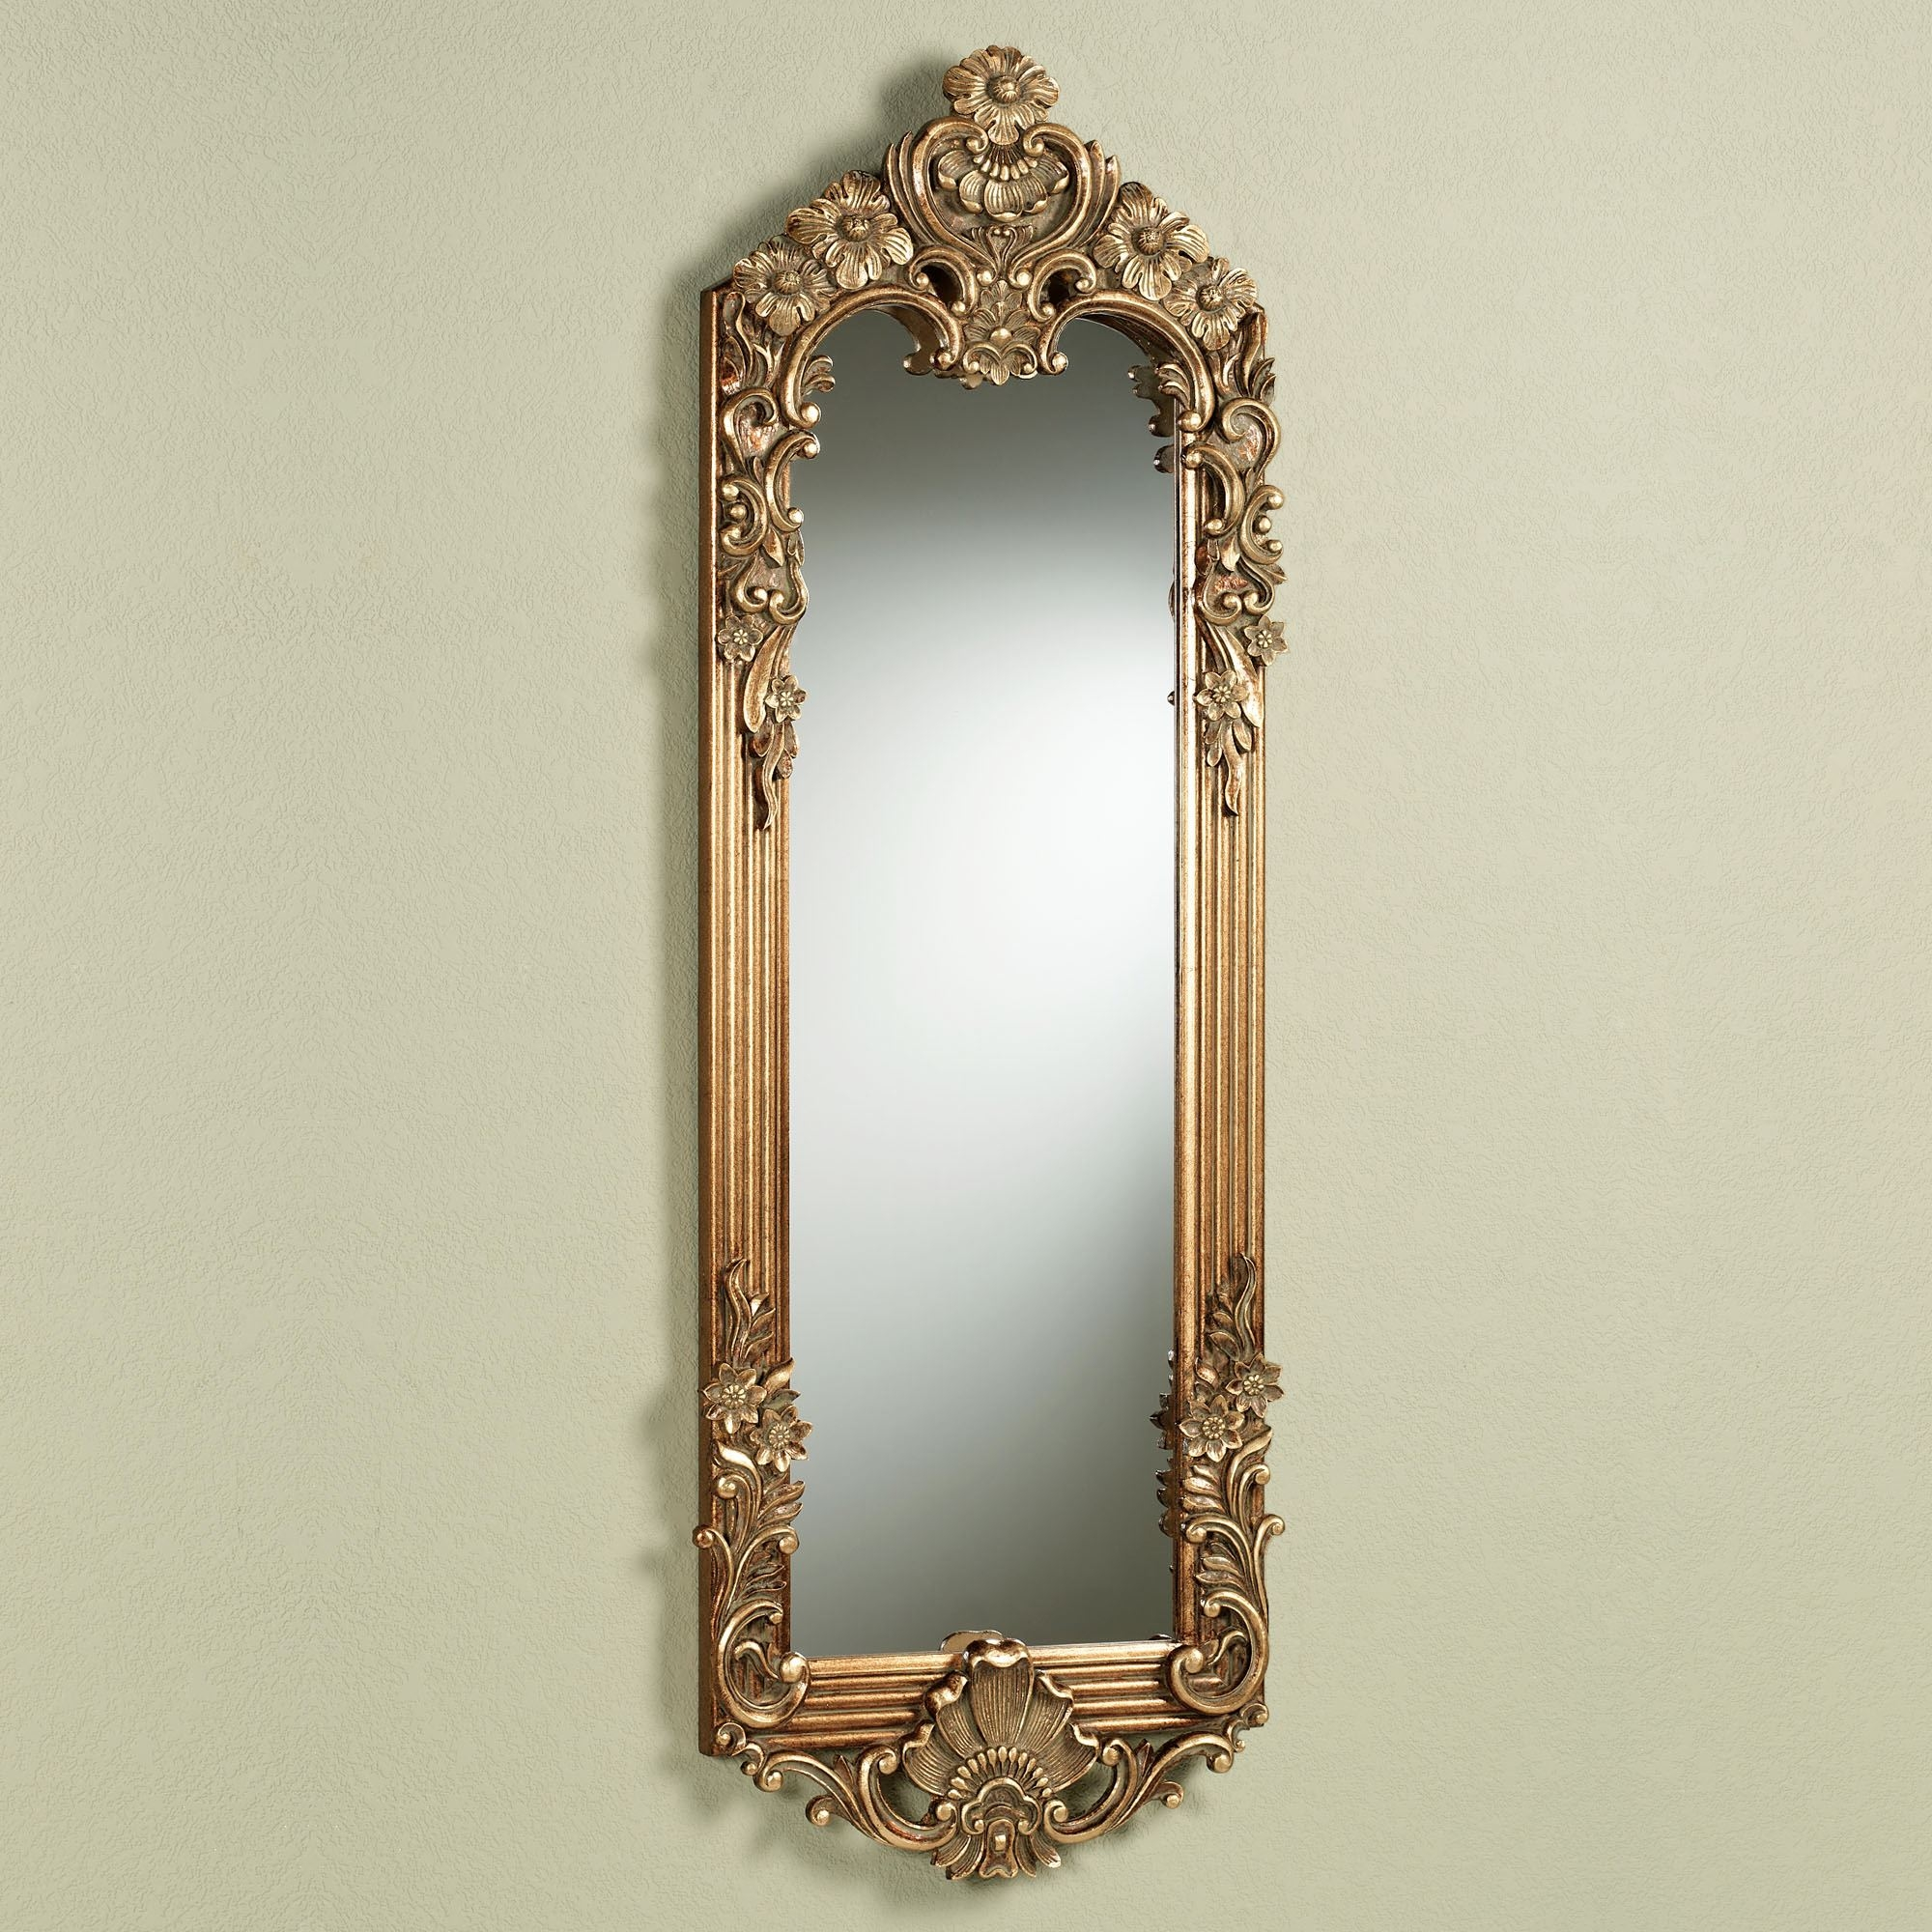 Wall Mirrors Touch Of Class With Regard To Long Narrow Mirrors For Sale (Image 15 of 15)